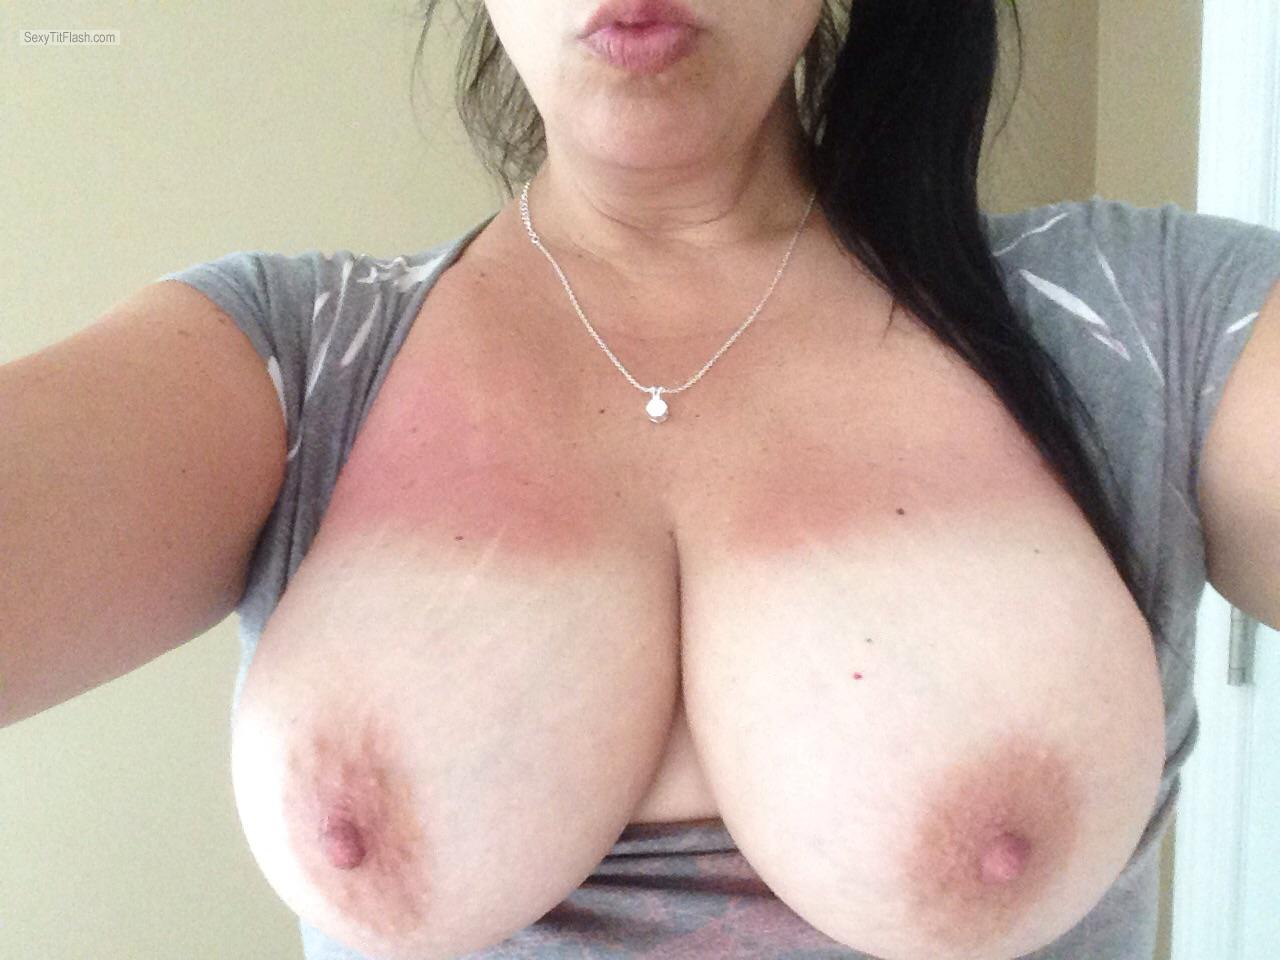 Tit Flash: My Big Tits - Shannon from United States